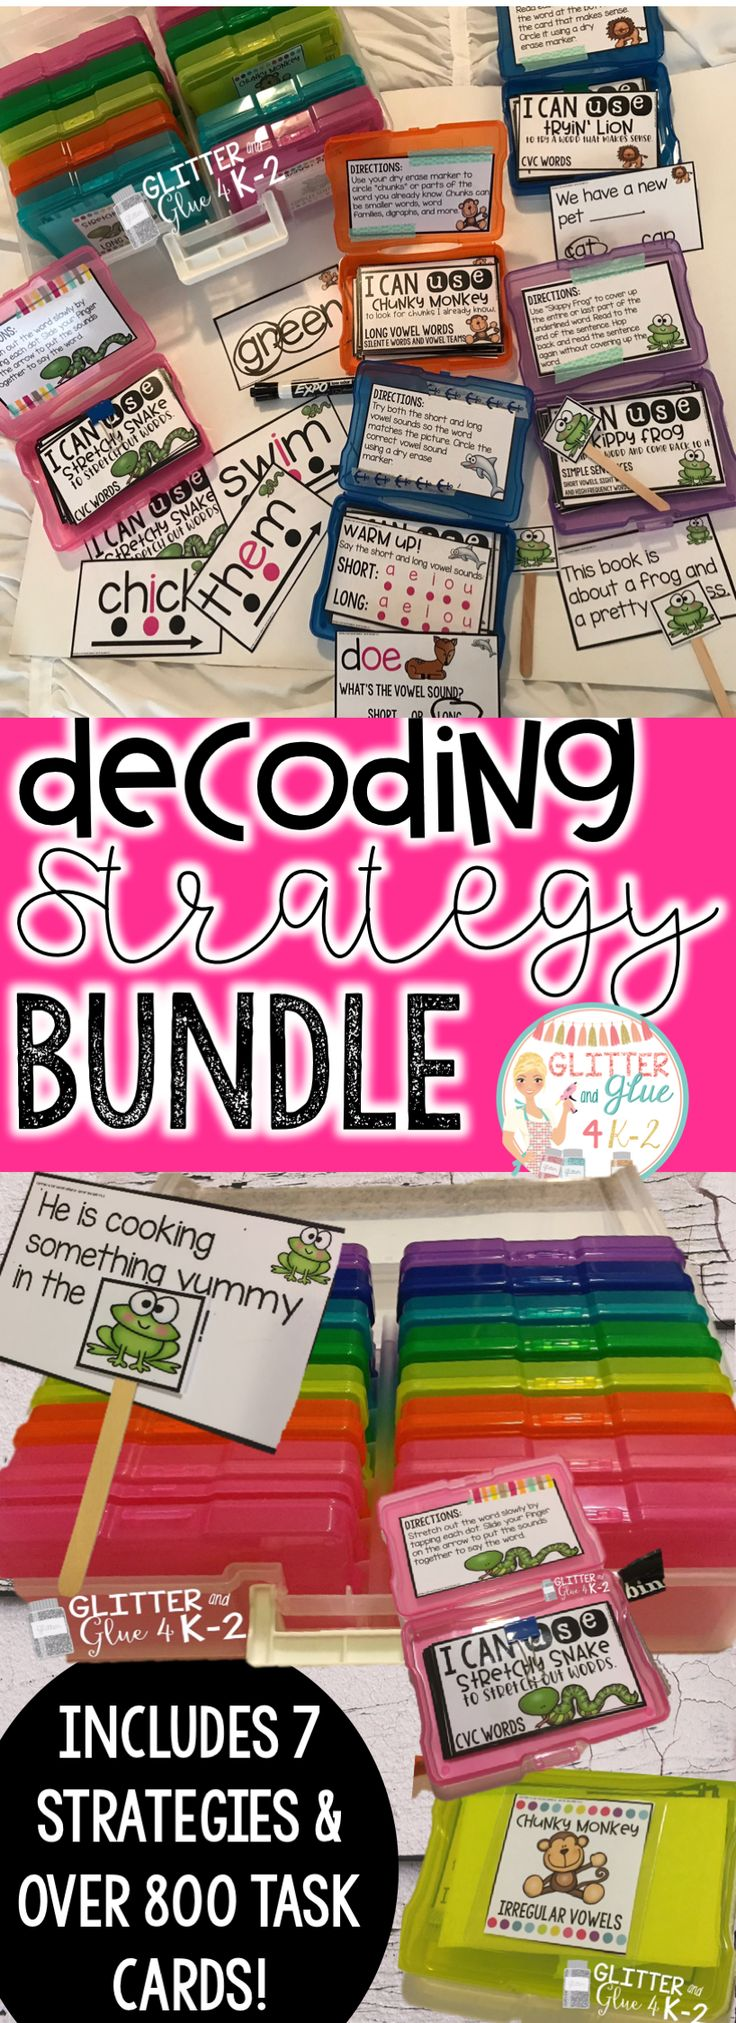 I am so excited to finally have this resource available to share with you and your students! :) This is a great way to start off your guided reading time or you can use the cards as an extra intervention! Strategies included are: stretchy snake, lips the fish, tryin' lion, eagle eye, skippy frog, chunky monkey, and flippy dolphin. If you want to see more be sure to check out the preview and be sure to read over the rest of product description below! :) Check out the video link below to watch…